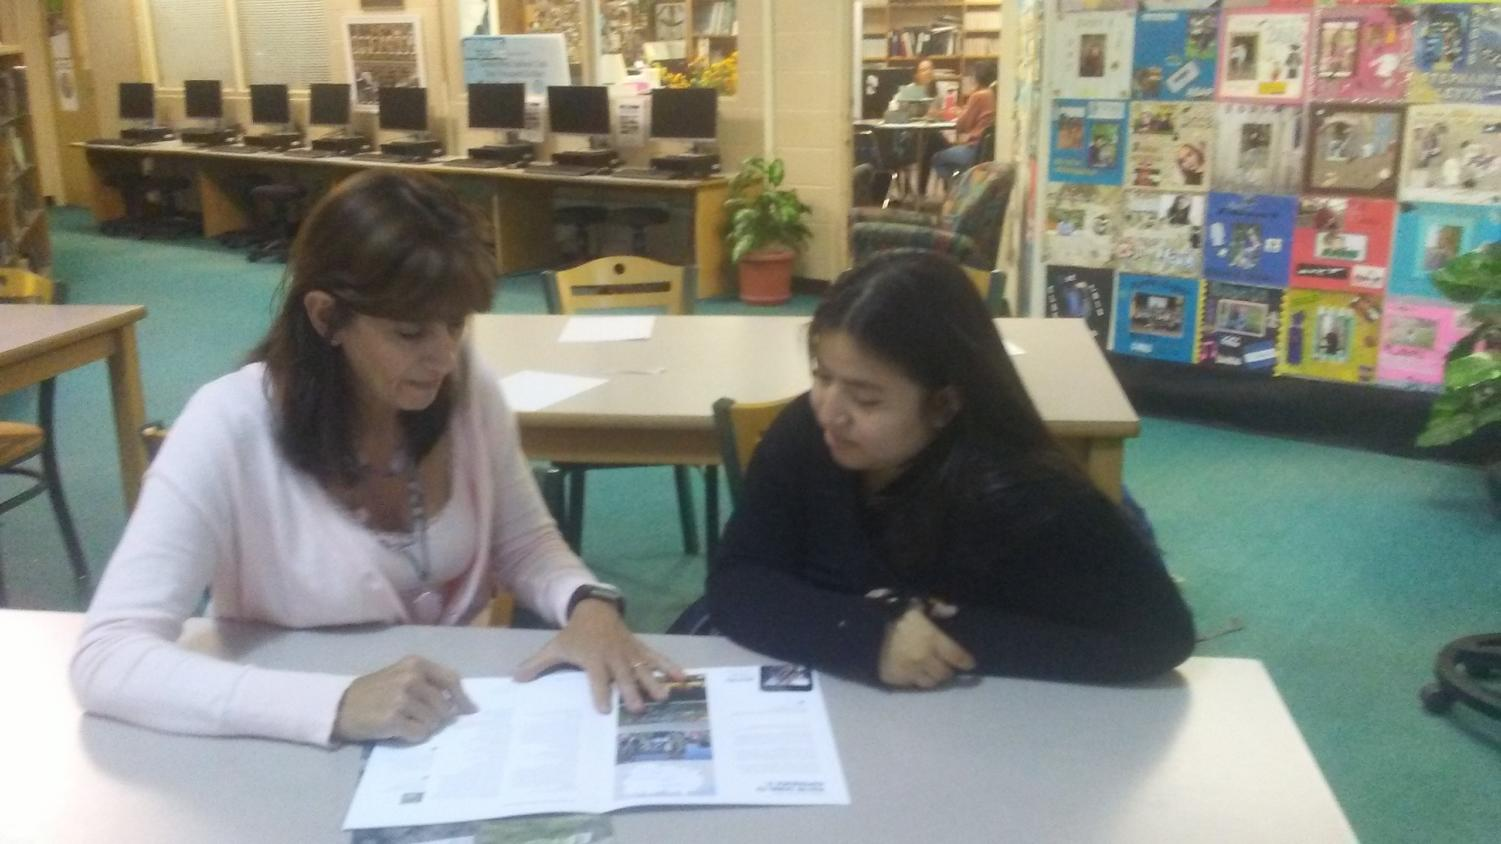 Ms. Susan Eastin and Daniela Adame Salomon discuss a future trip abroad in the library last week.